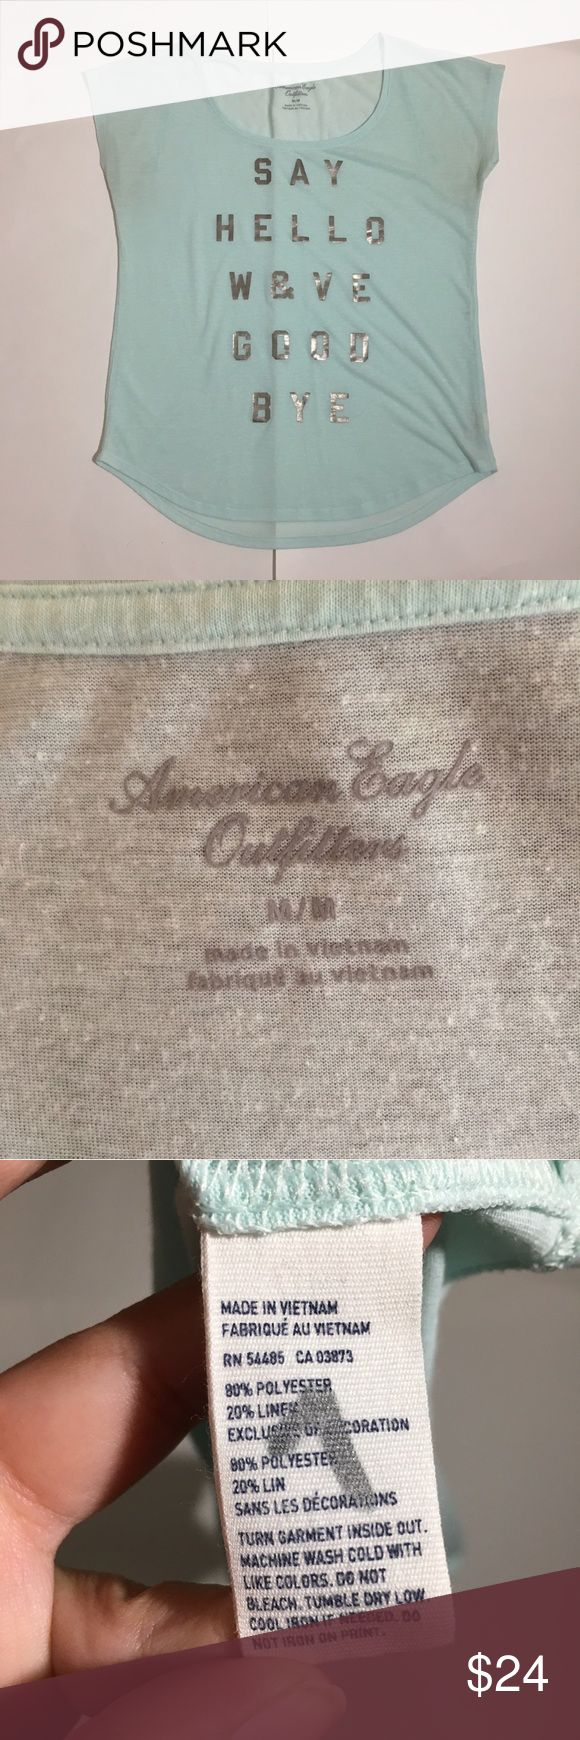 """American Eagle  """"Say Hello Wave Goodbye"""" Tee M Adorable semi-sheer American Eagle Outfitters seafoam green tee! """"Say Hello Wave Goodbye"""" is the saying on the shirt. Perfect Condition shirt. Size Medium. 80% Polyester, 20% Linen. 22"""" armpit to armpit (laying flat), 25"""" shoulder to hem. American Eagle Outfitters Tops Tees - Short Sleeve"""